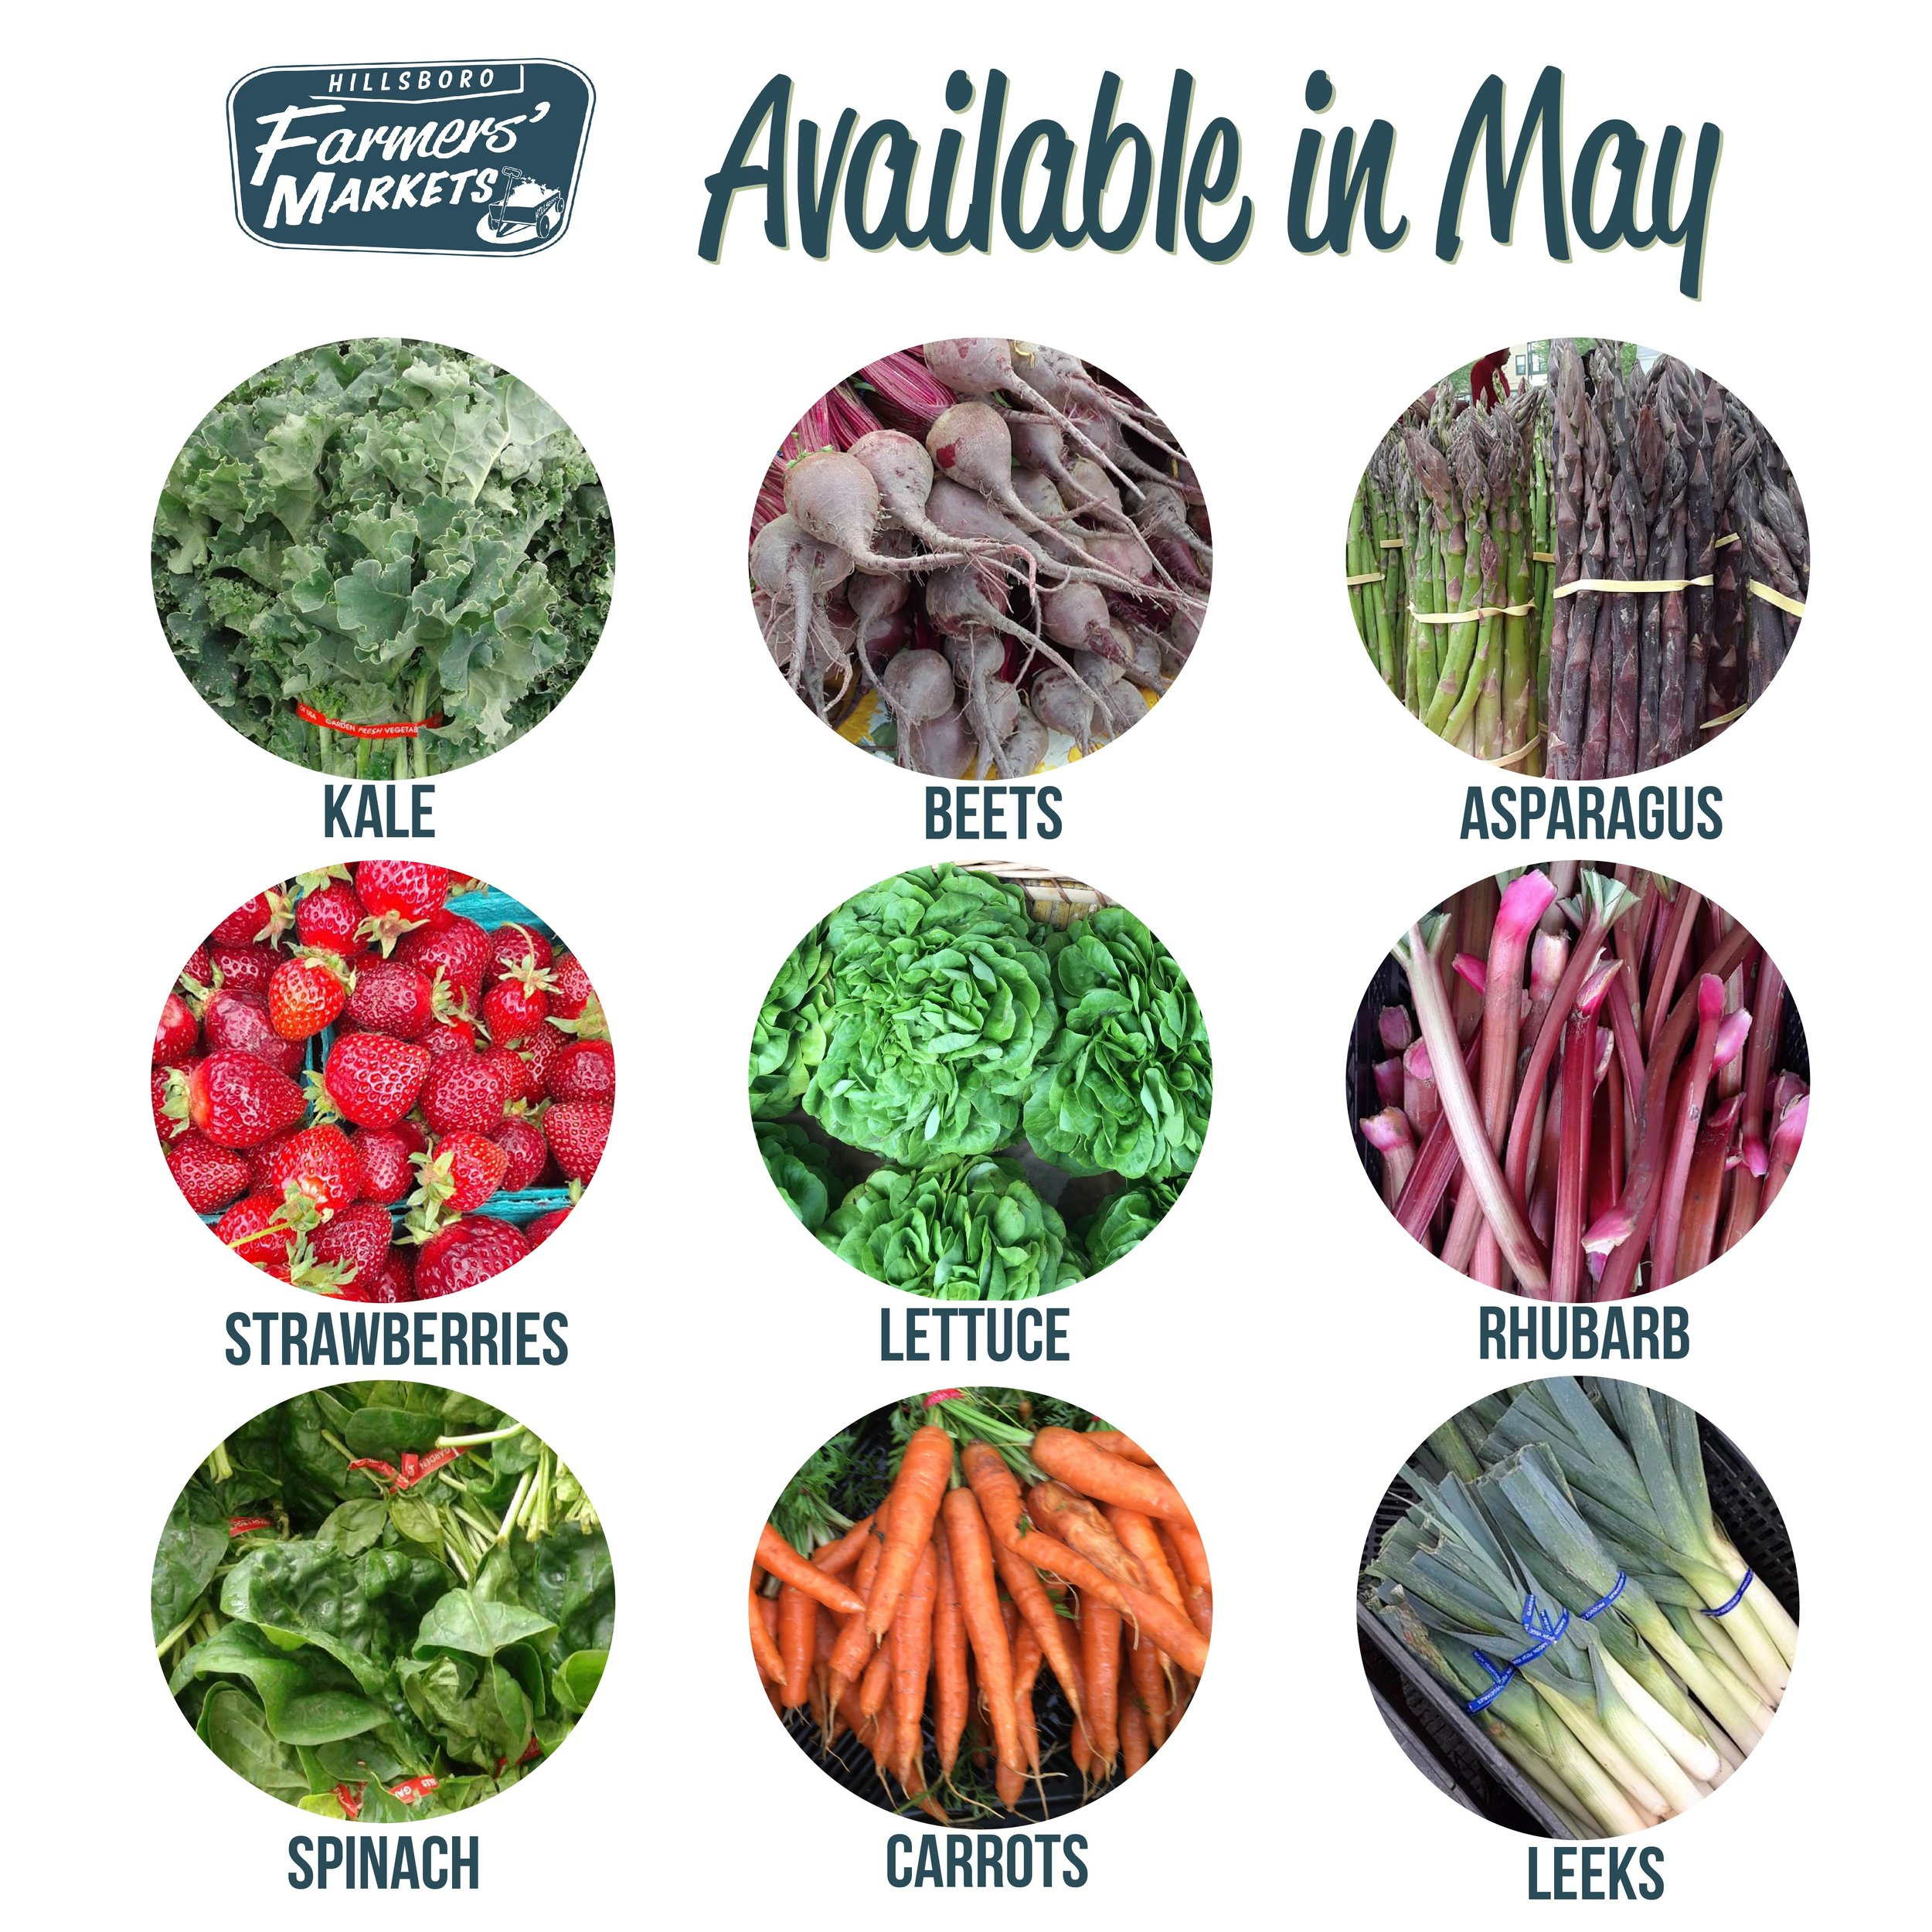 The products available at the market depends on the season. With spring, we see some of our favorites like STrawberries, Rhubarb, and Asparagus! -